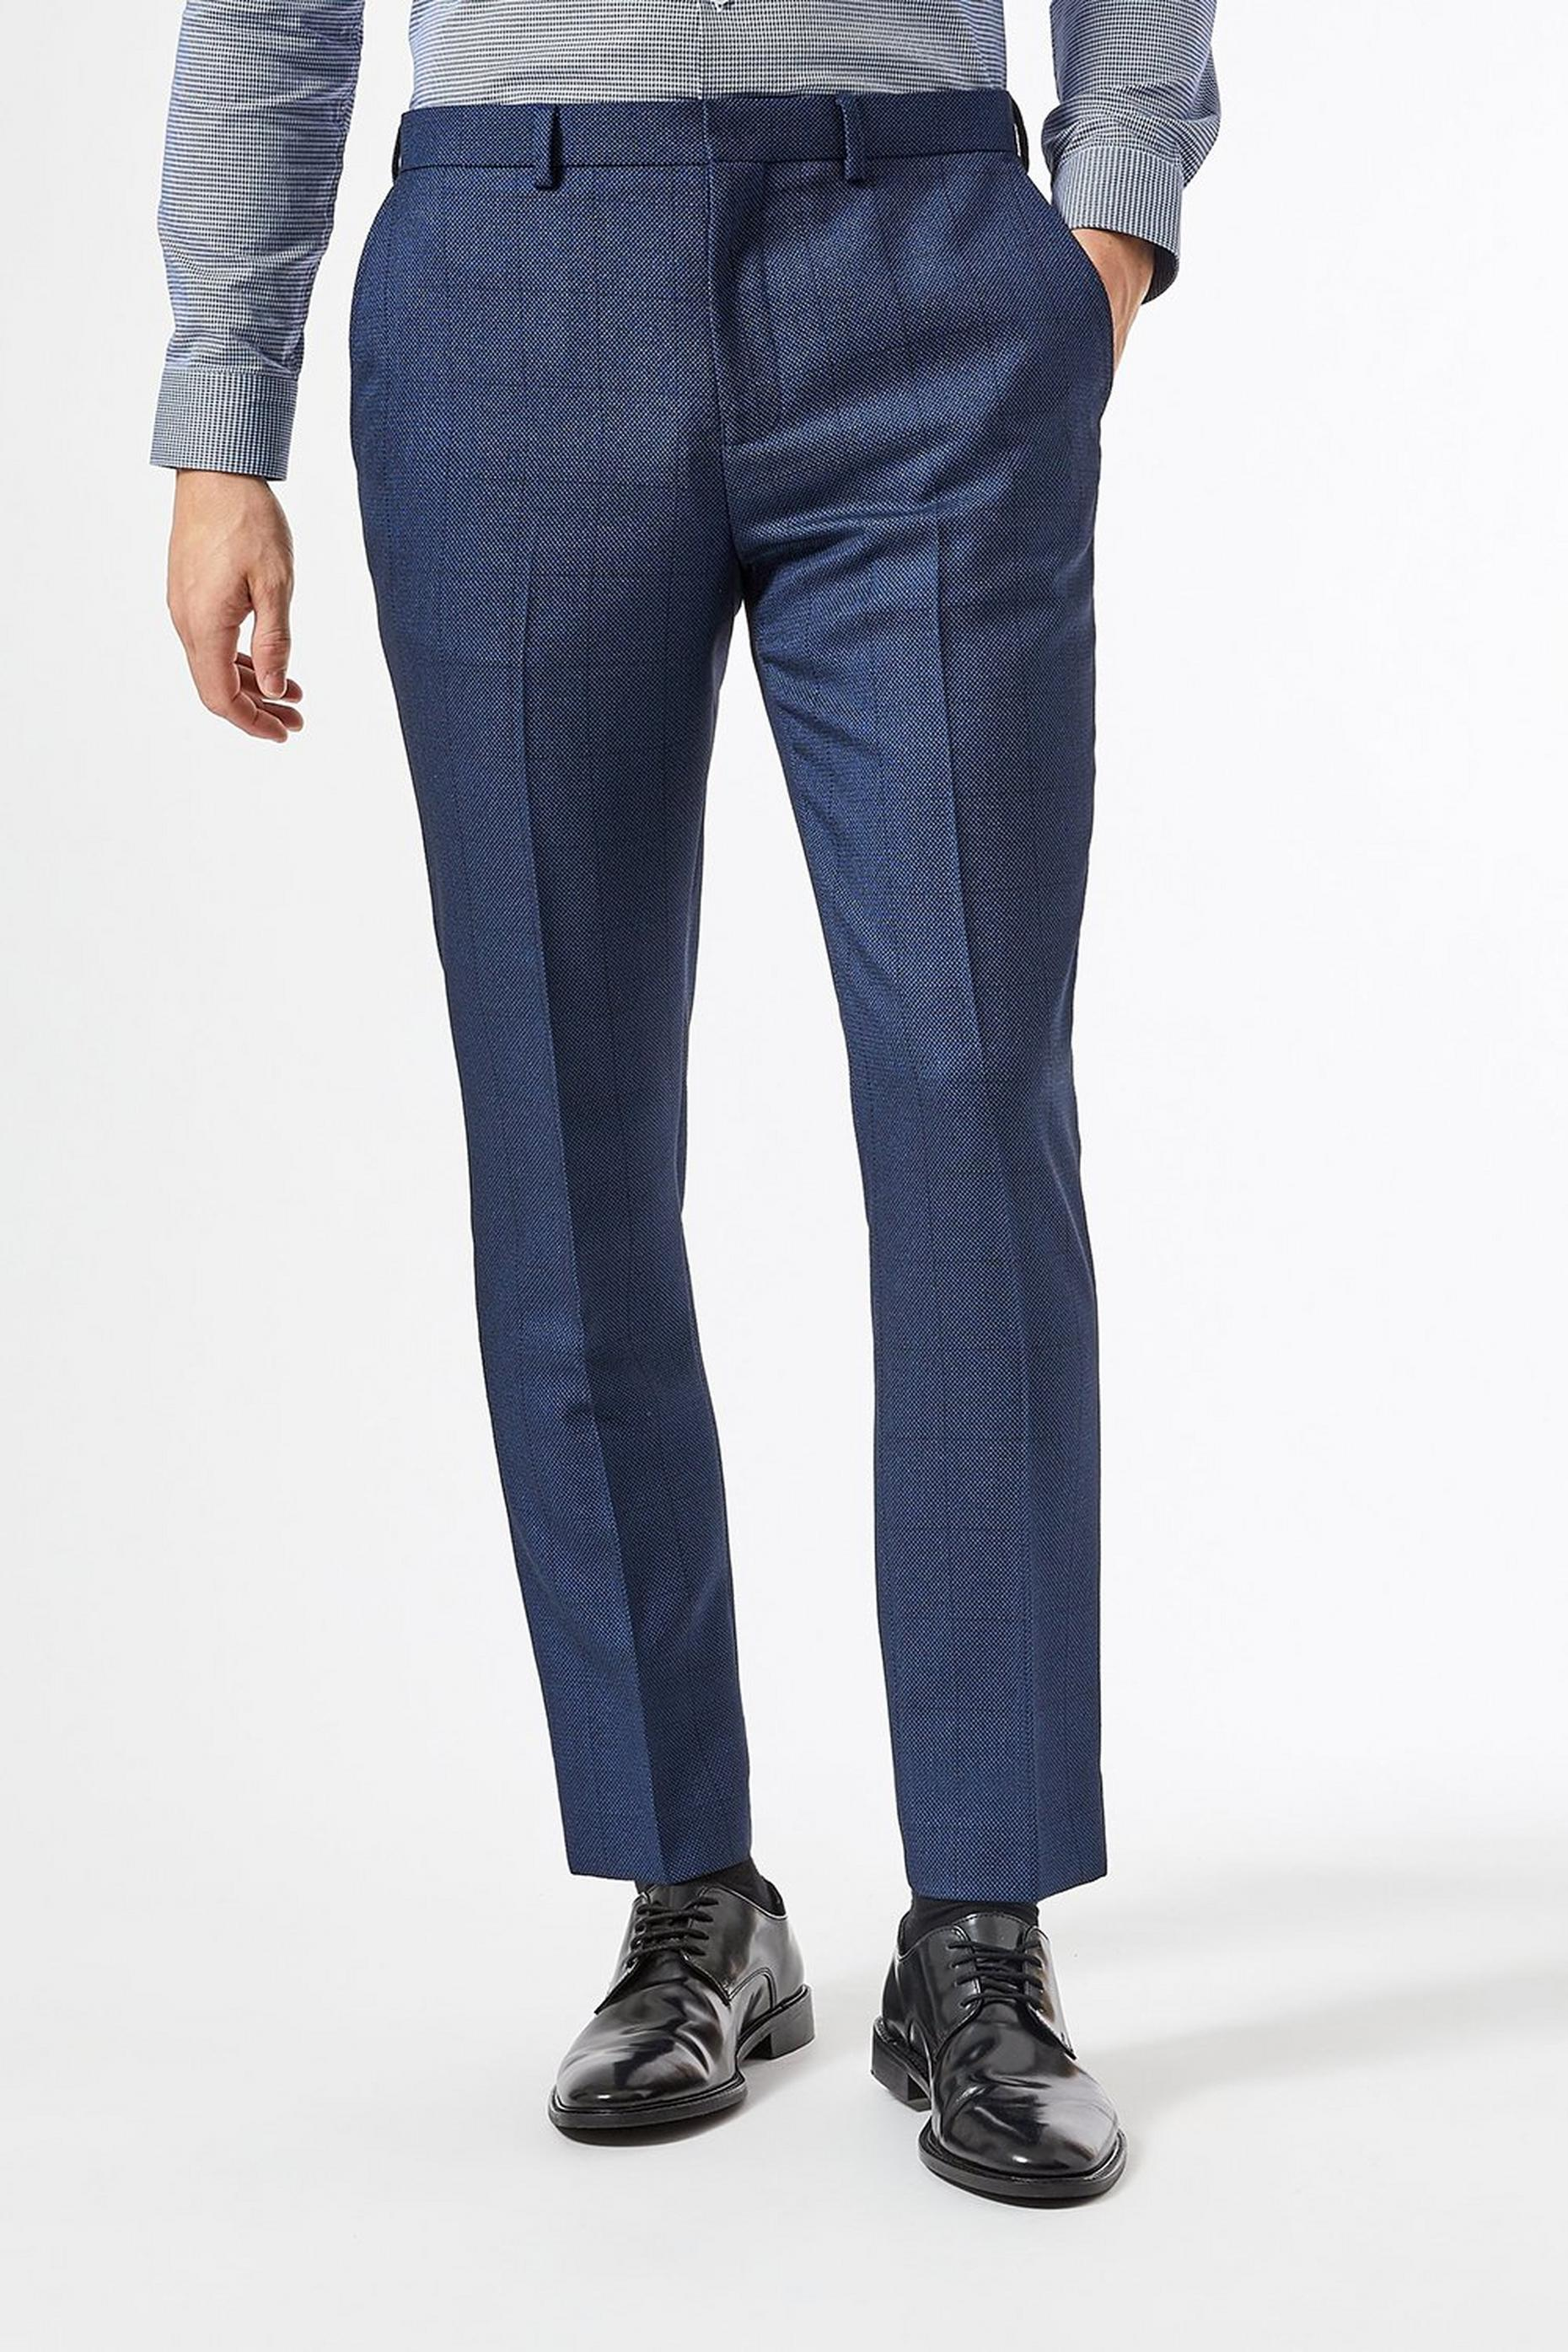 Navy Slim Fit Birdseye Suit Trousers